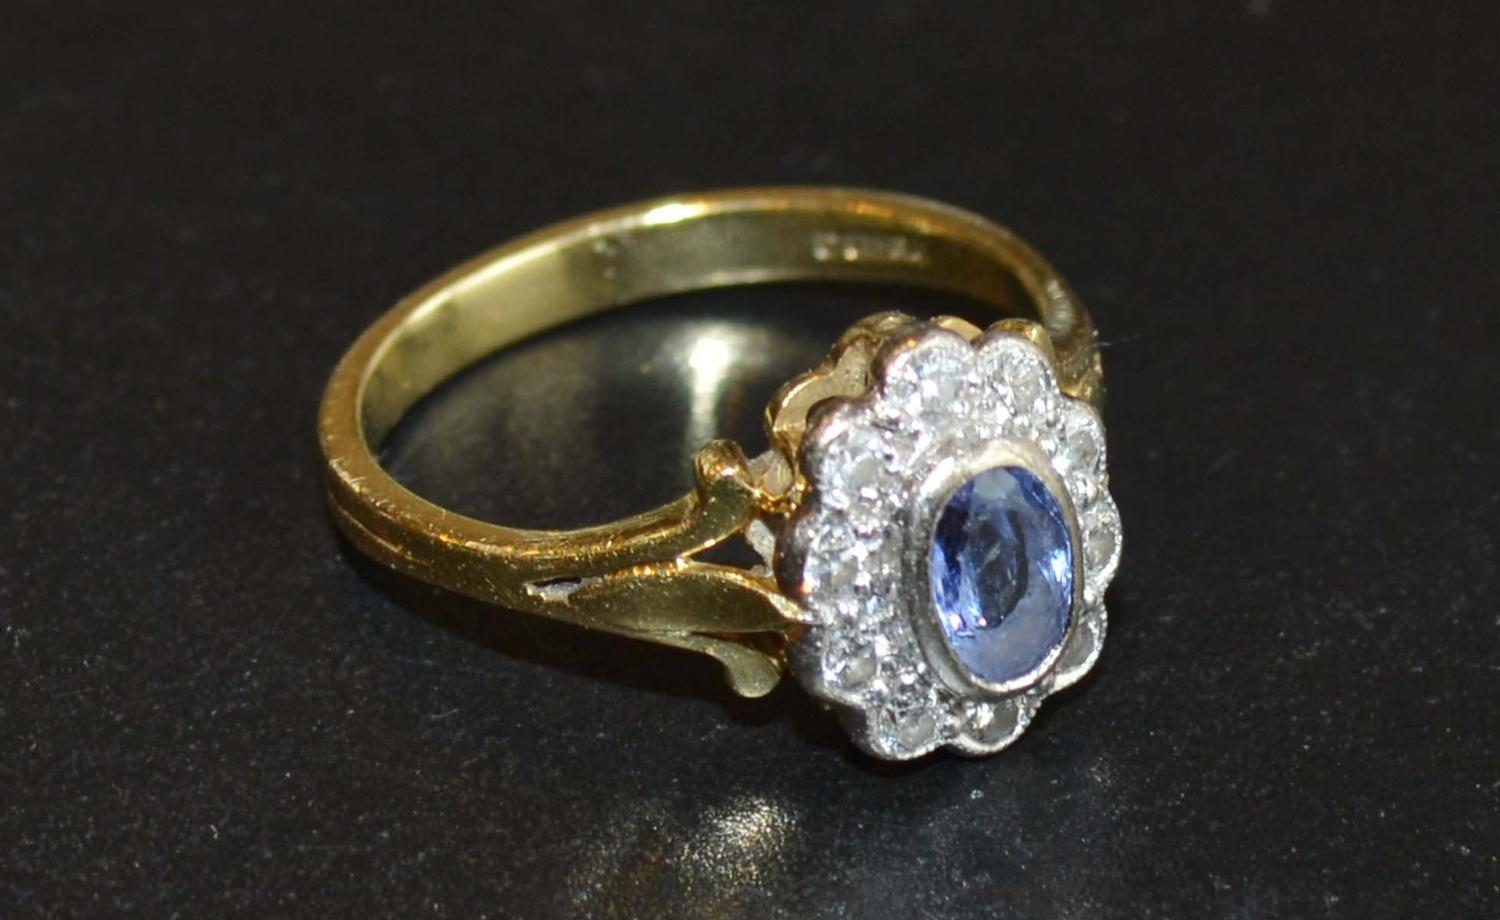 Lot 219 - An 18 Carat Gold Tanzanite and Diamond Ring set with an oval tanzanite surrounded by diamonds